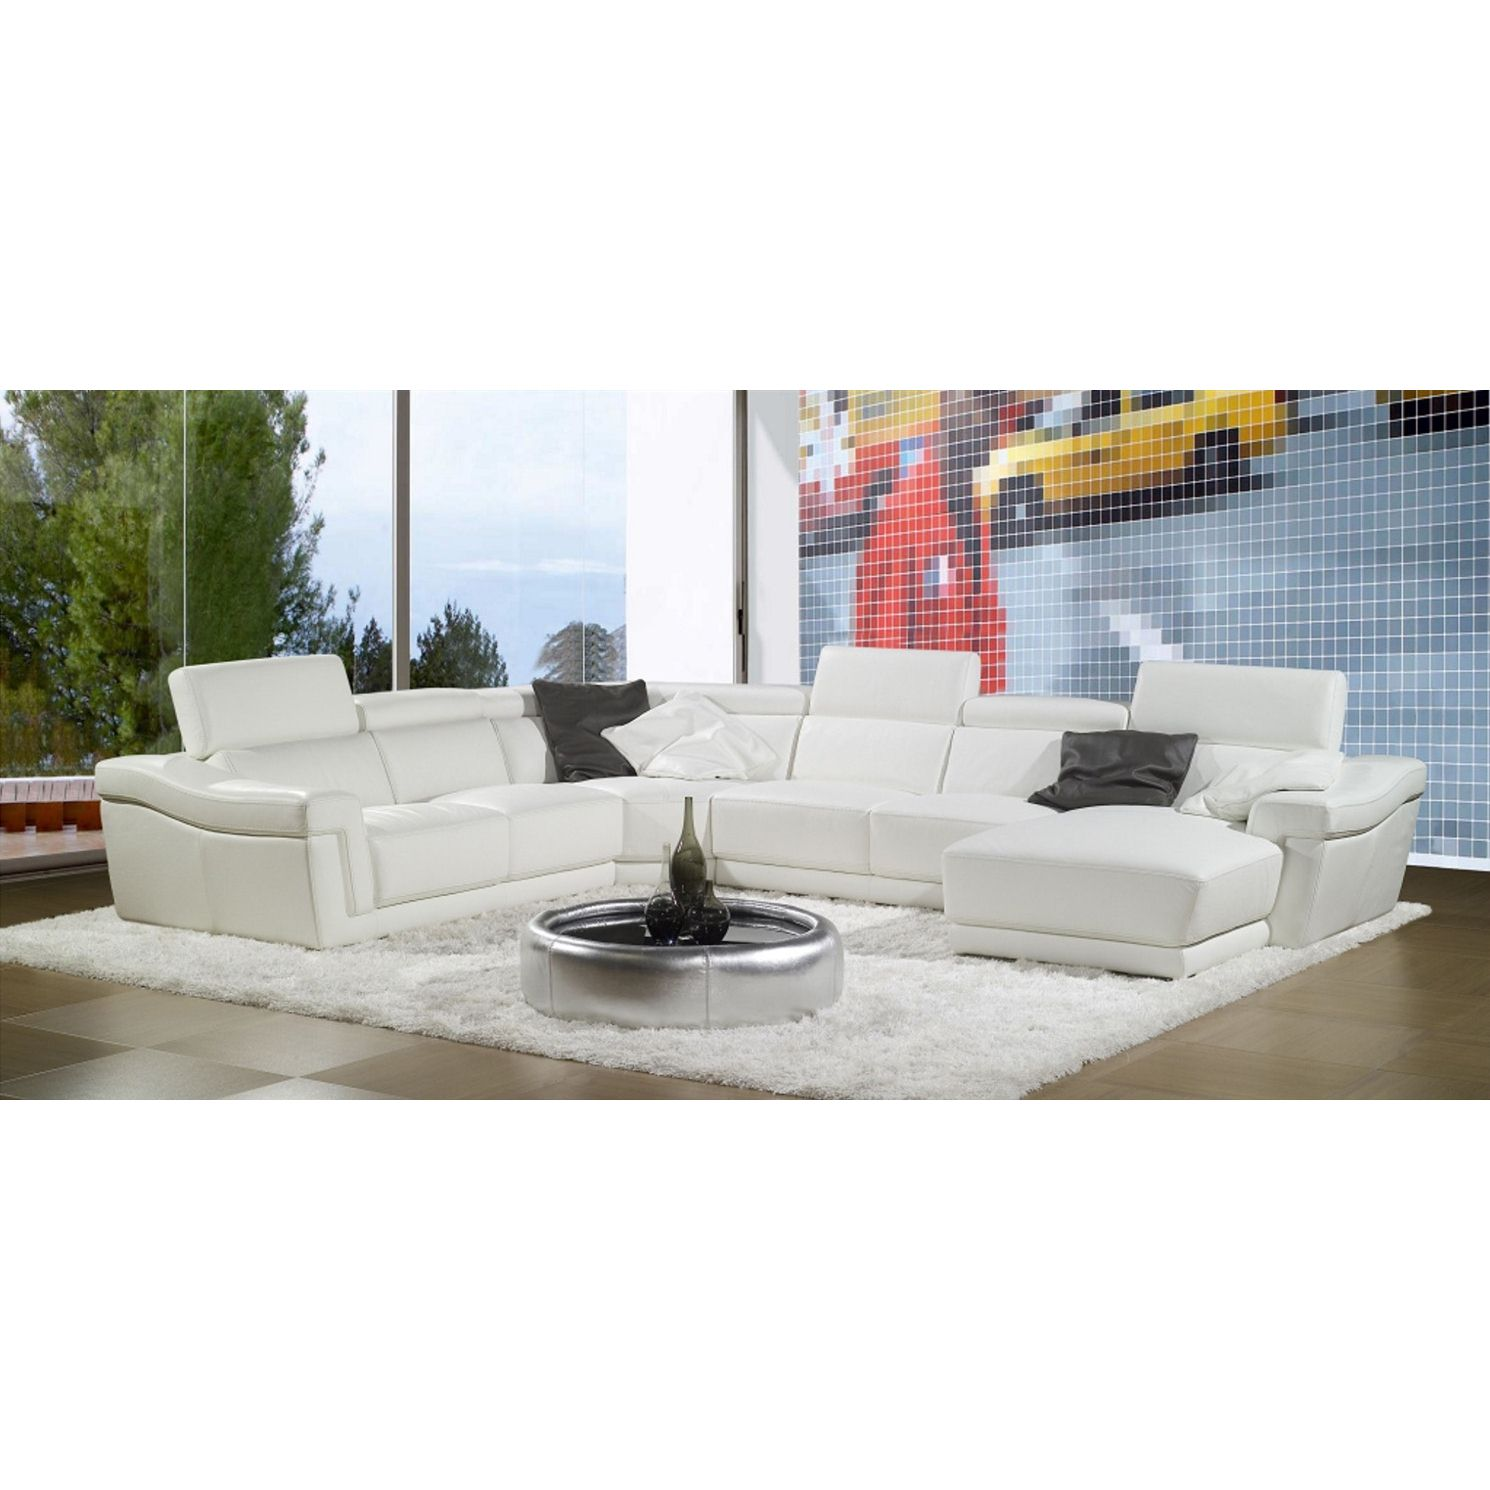 Deco in paris grand canape d angle cuir blanc tetieres for Canape cuir paris